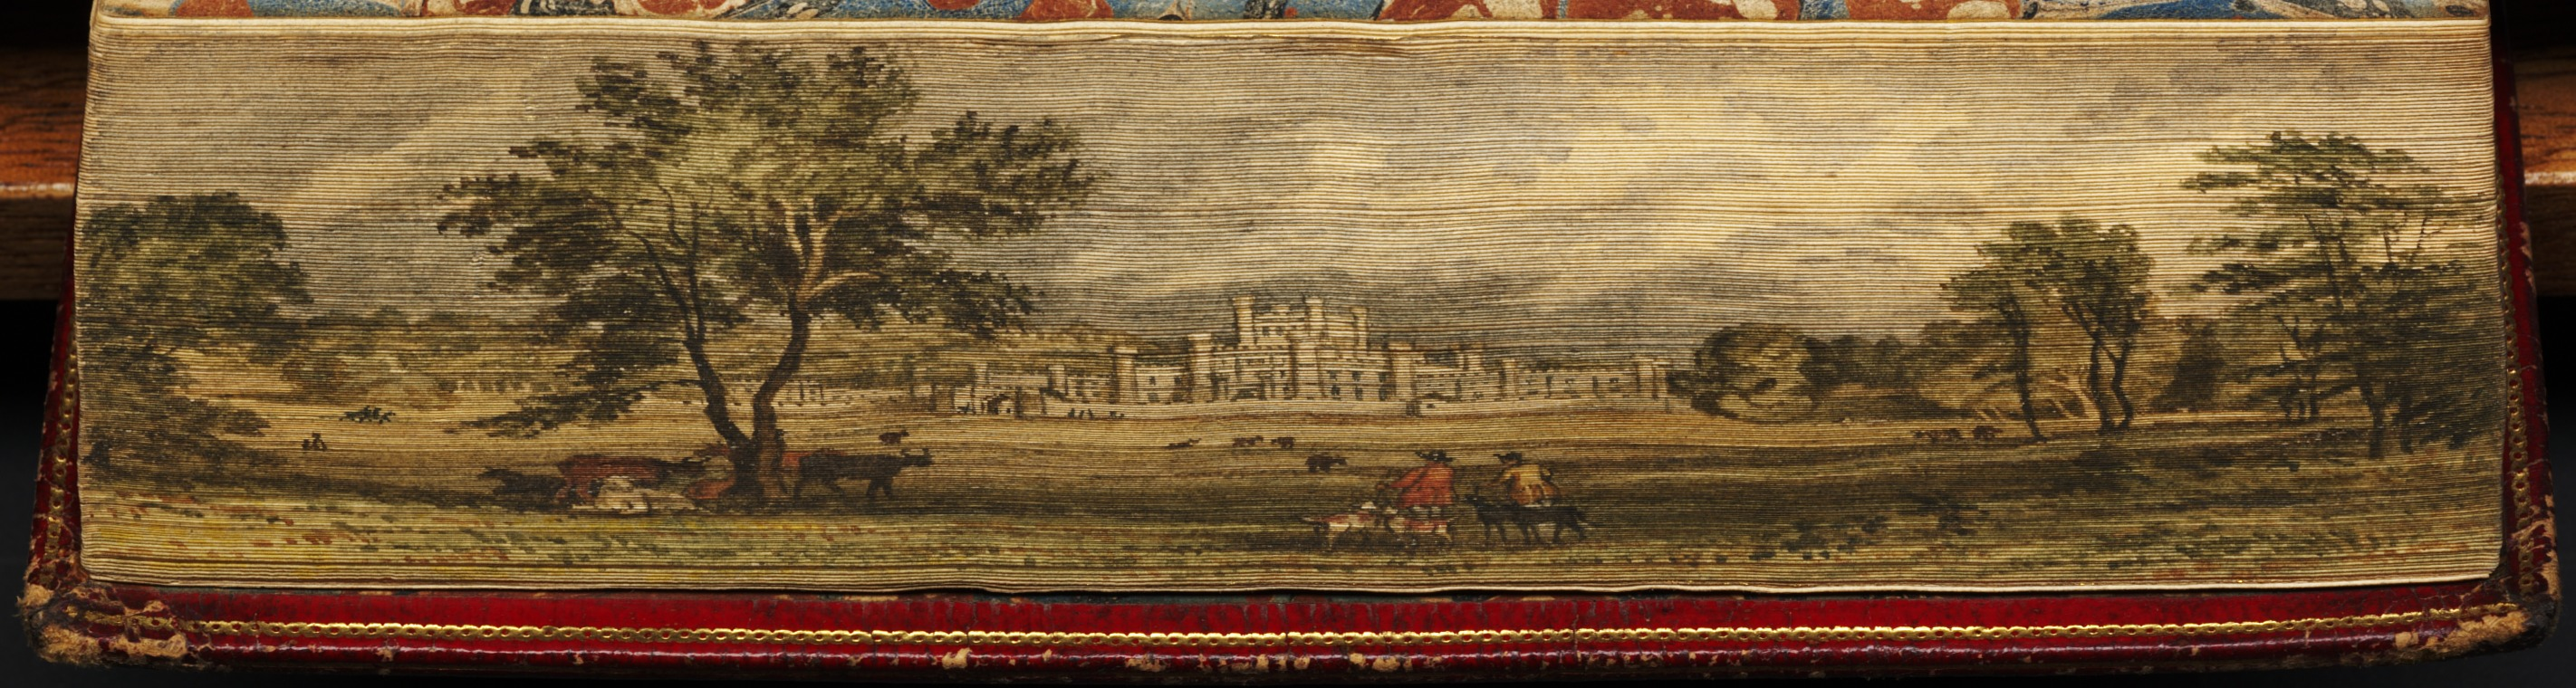 View of Lowther Castle, Westmoreland